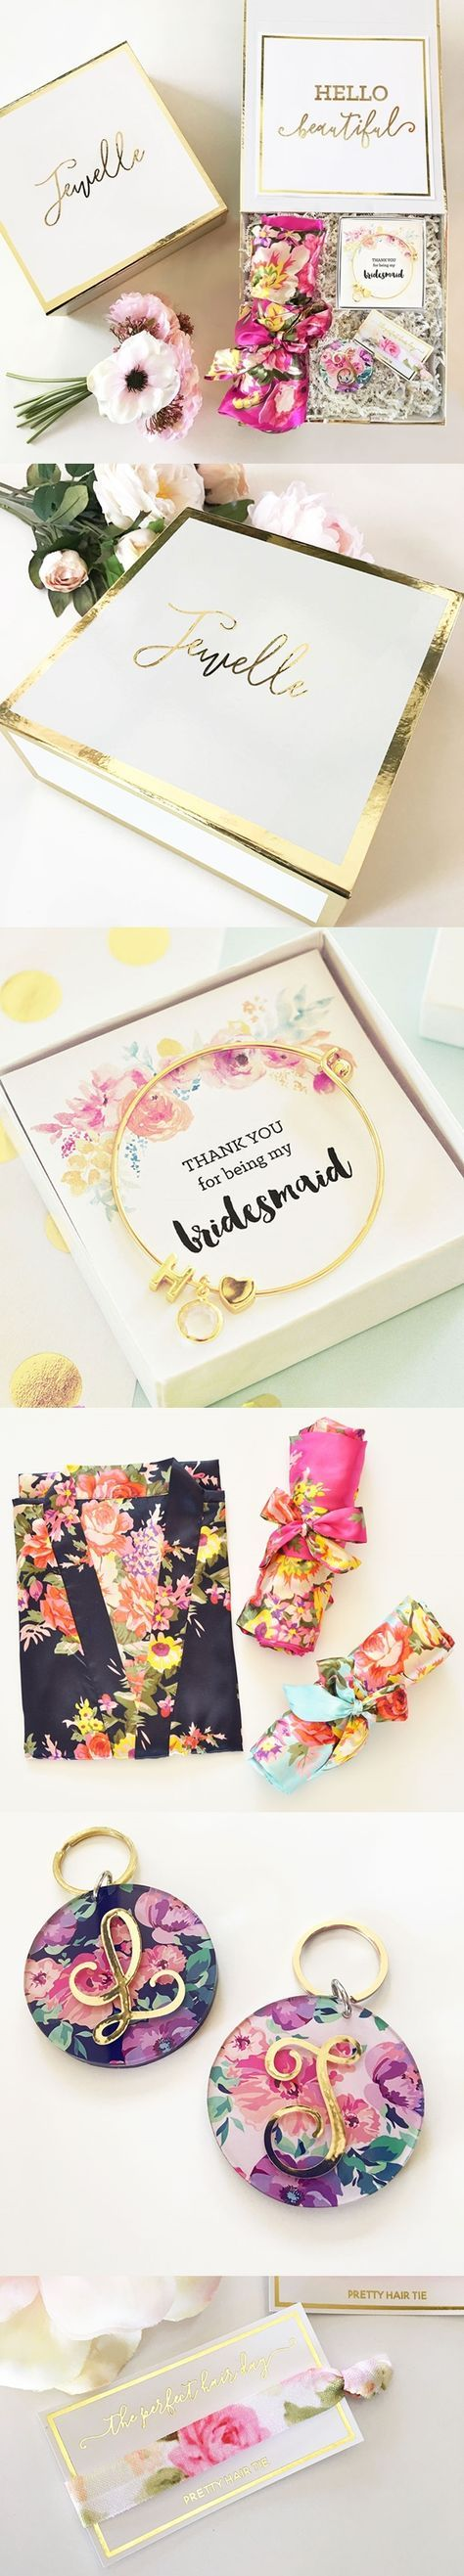 Thank You for Being My Bridesmaid Gift Set in Personalized Gift-Box | Personalized Gifts and Party Favors